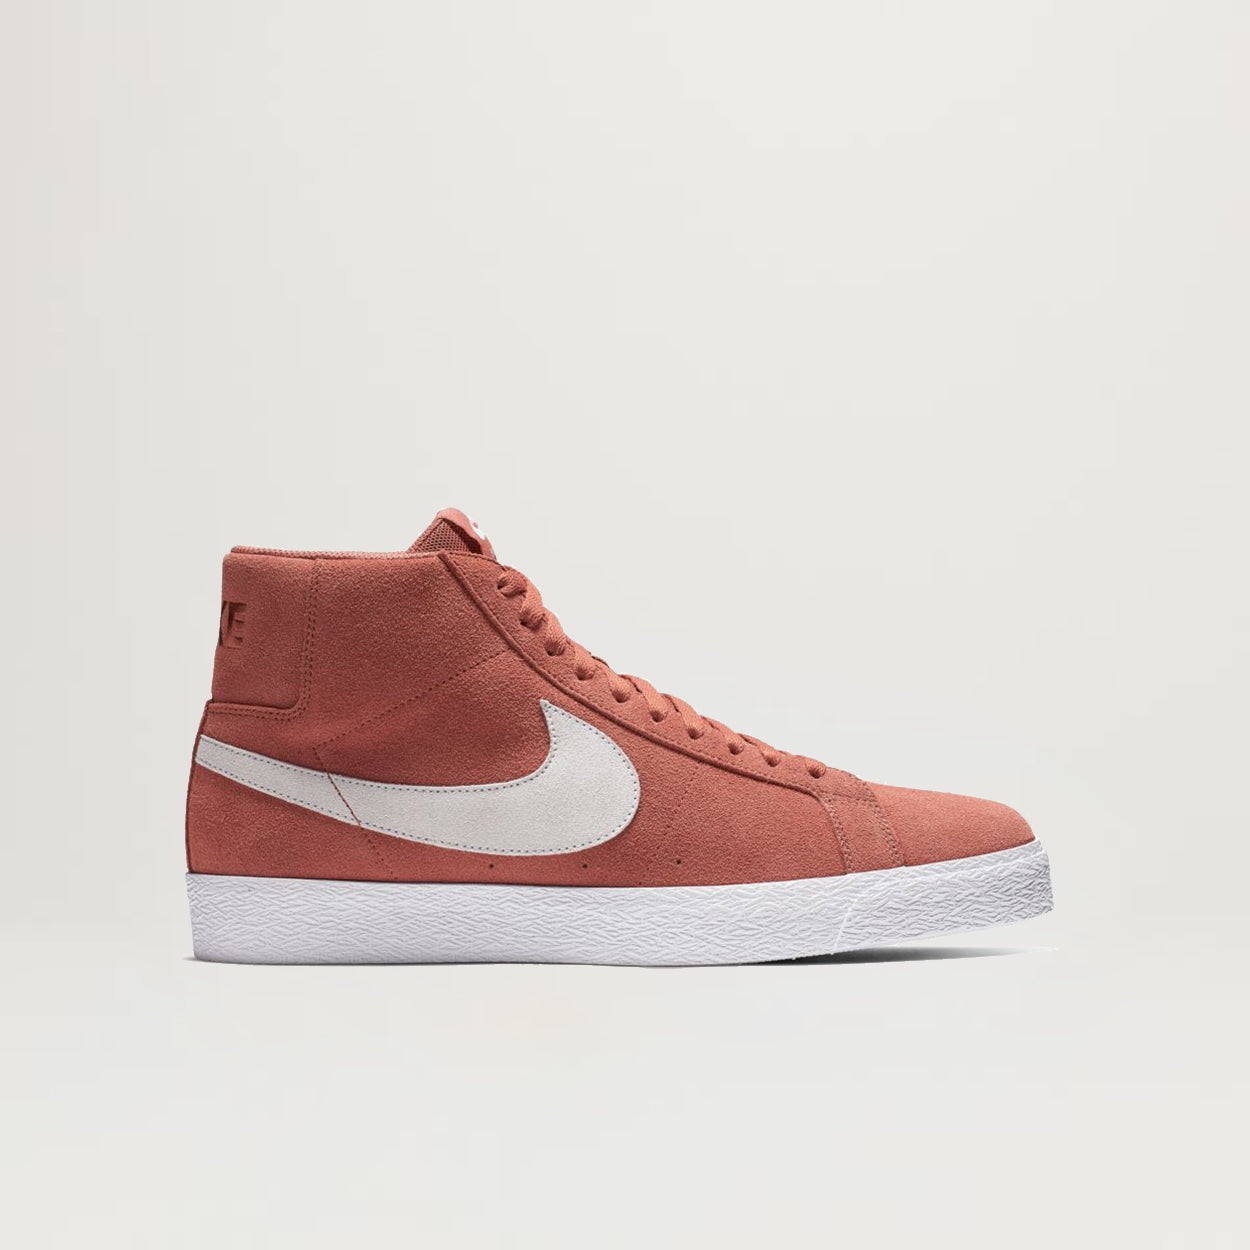 half off 9f46e 2ef63 Nike SB Zoom Blazer Mid (Dusty Peach White)